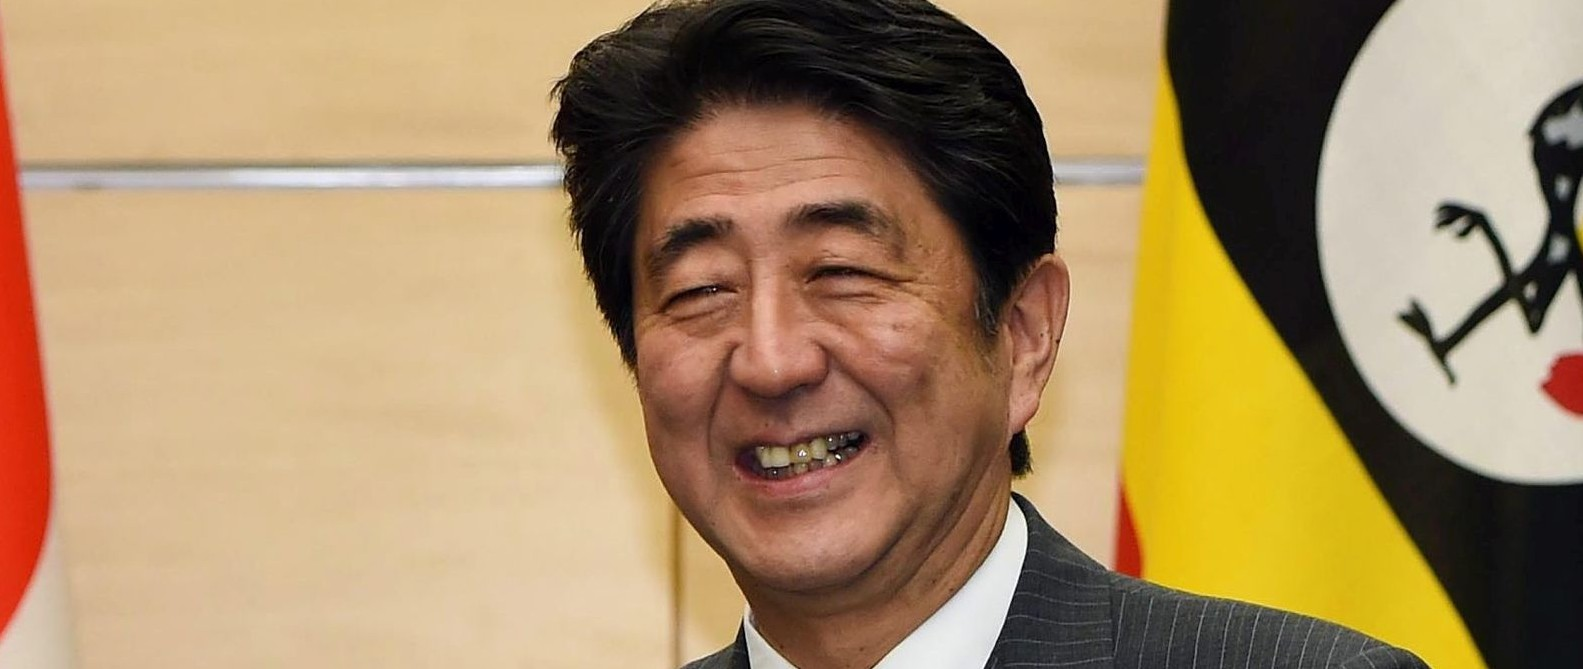 VIDEO: Shinzo Abe na razgovorima u gradu Moskvi